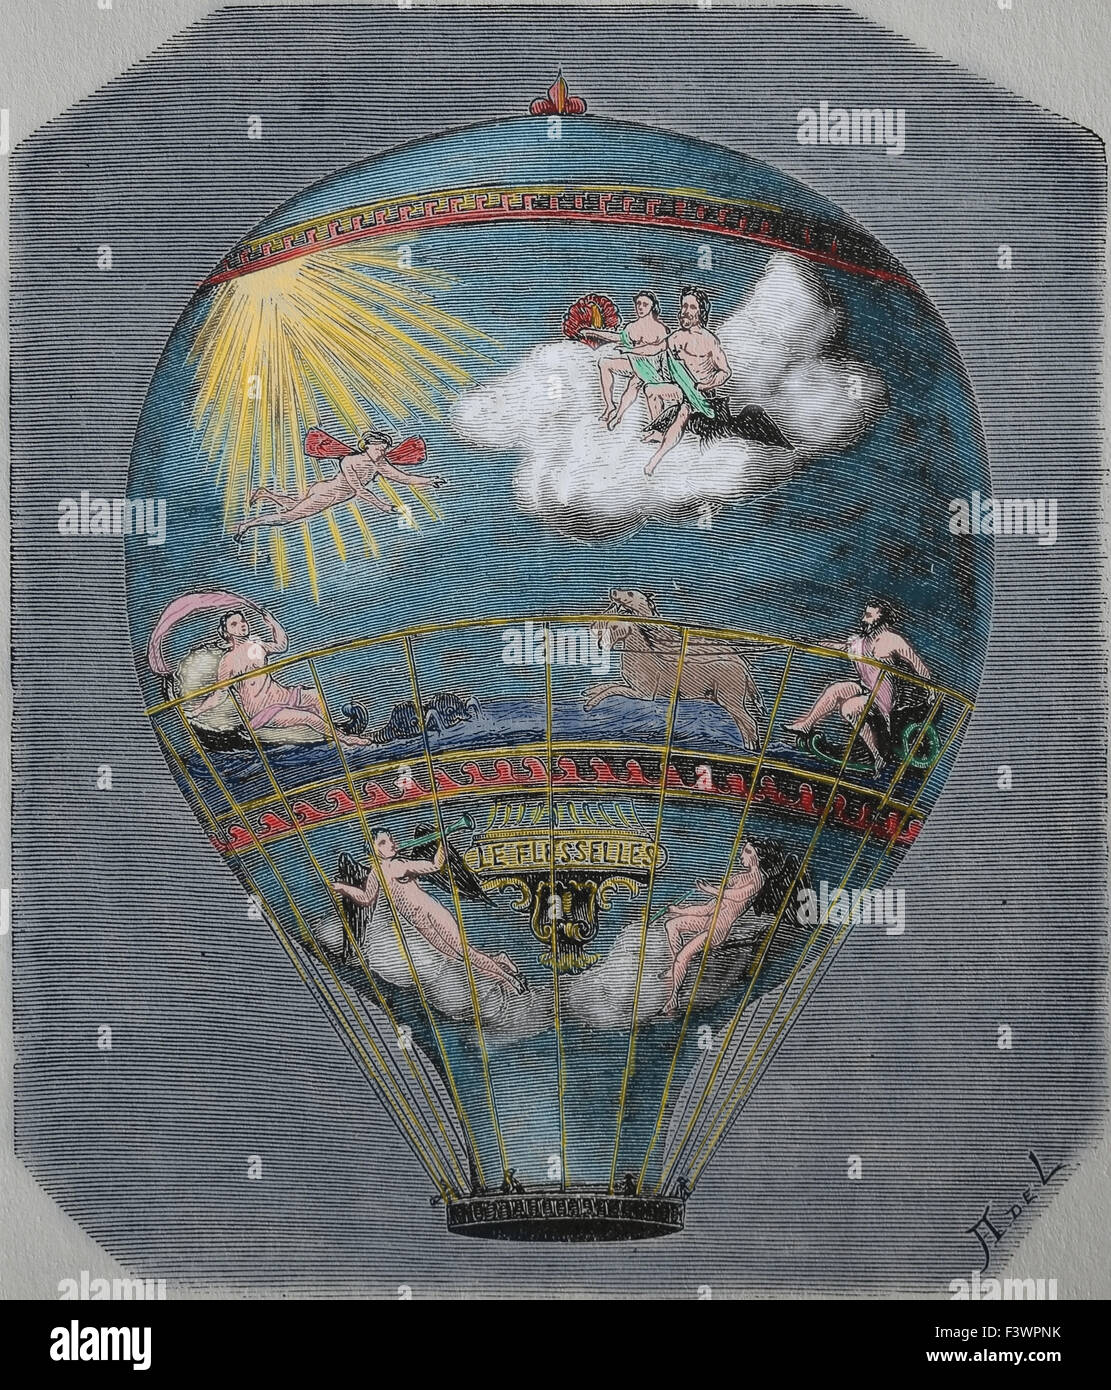 Early hot air balloon flight. This balloon Le Flesselles ascended over Lyon France on 1 January 1784. Engraving. Stock Photo